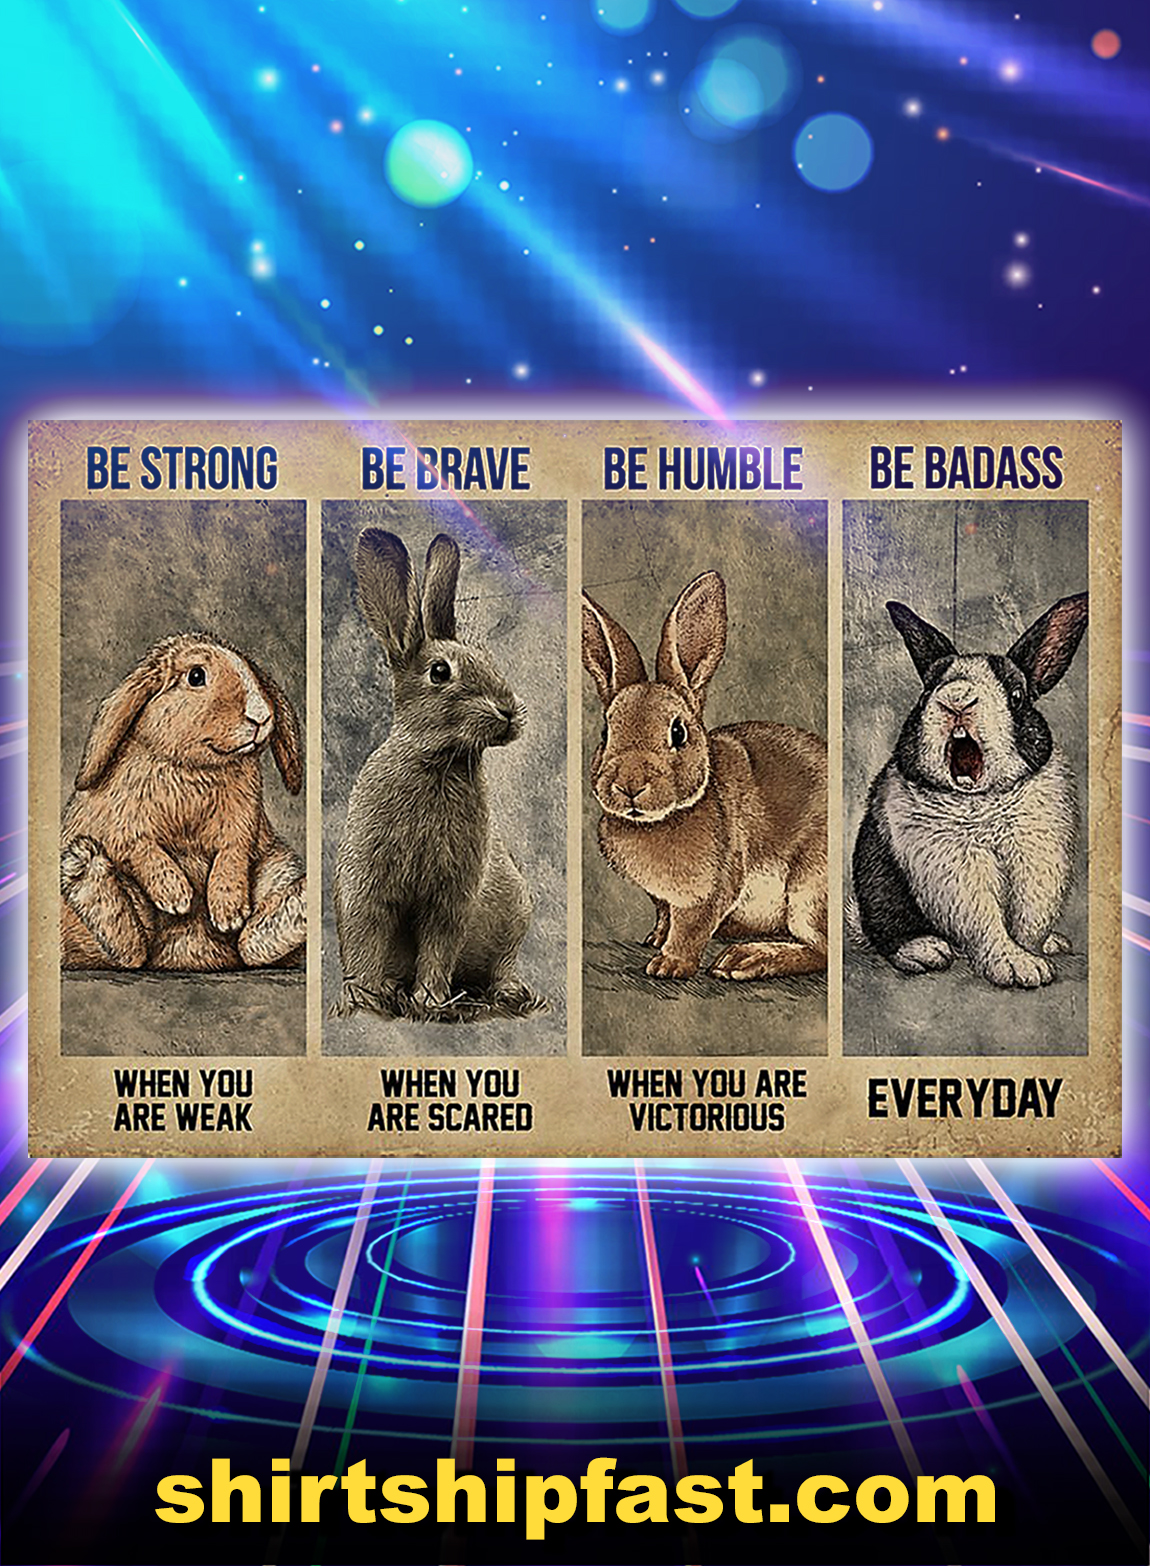 Be strong be brave be humble be badass rabbit poster - A2